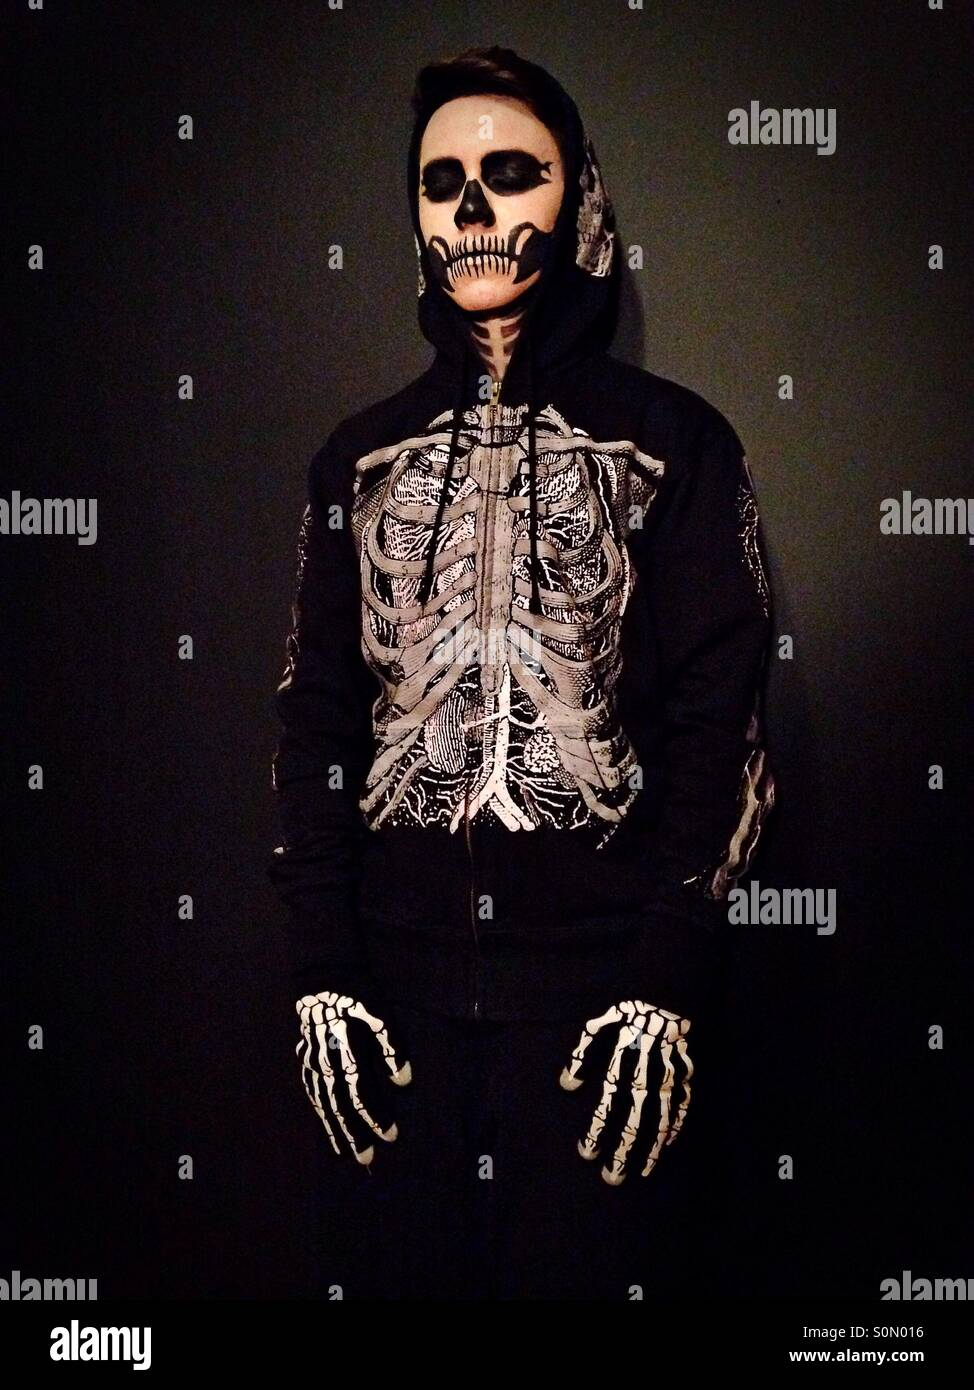 A person dressed as a skeleton. - Stock Image